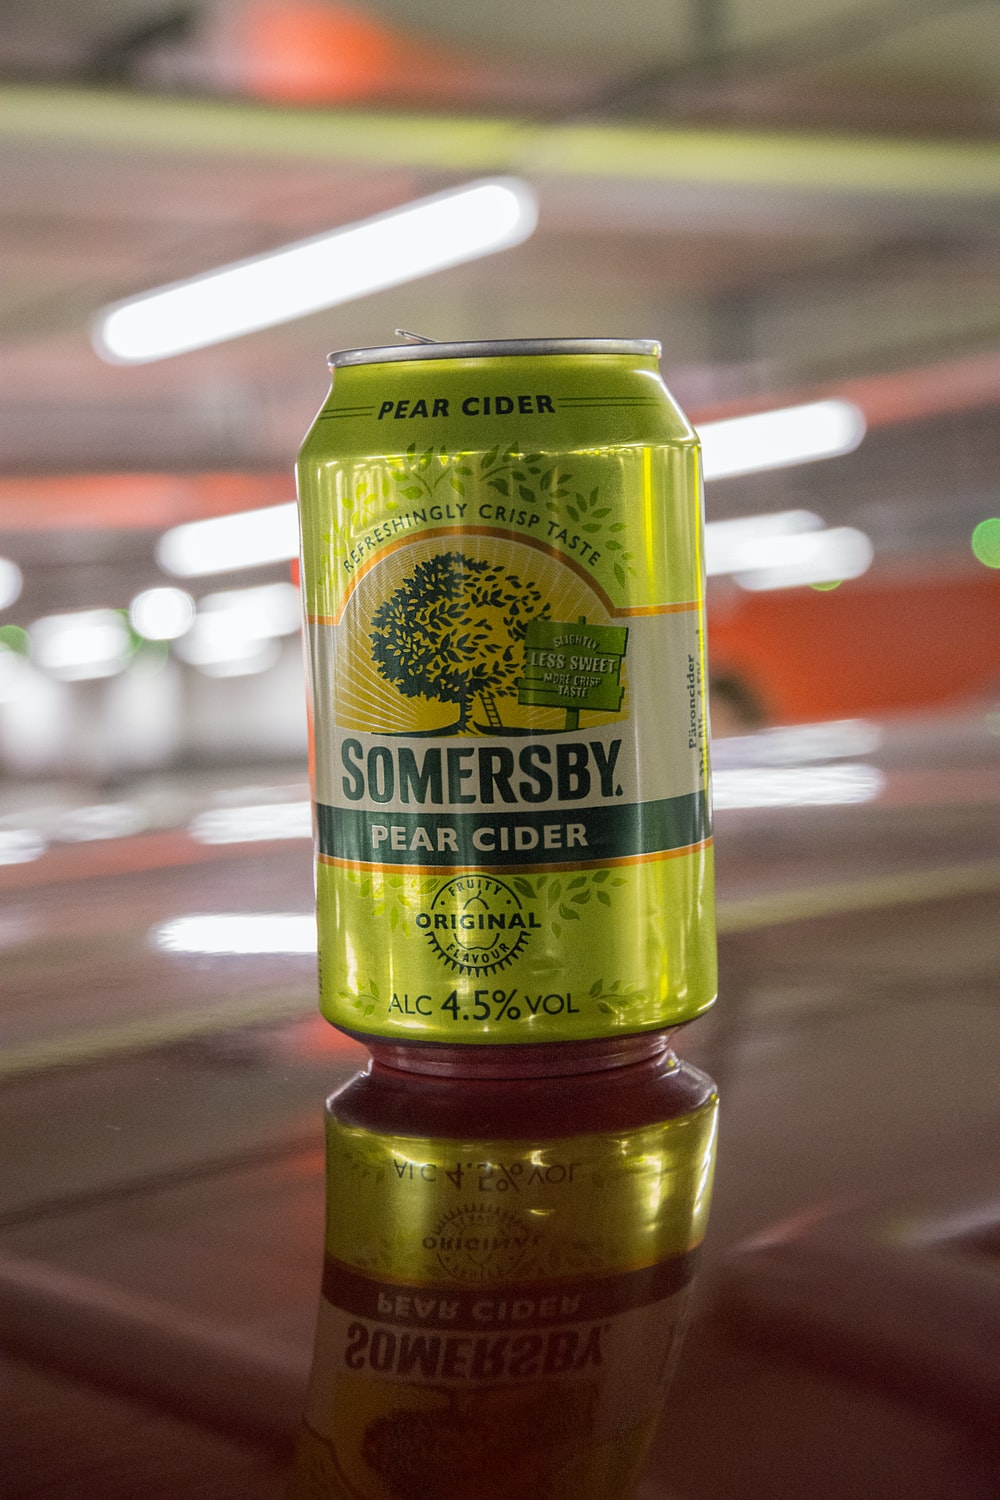 Somersby Pear Cider can